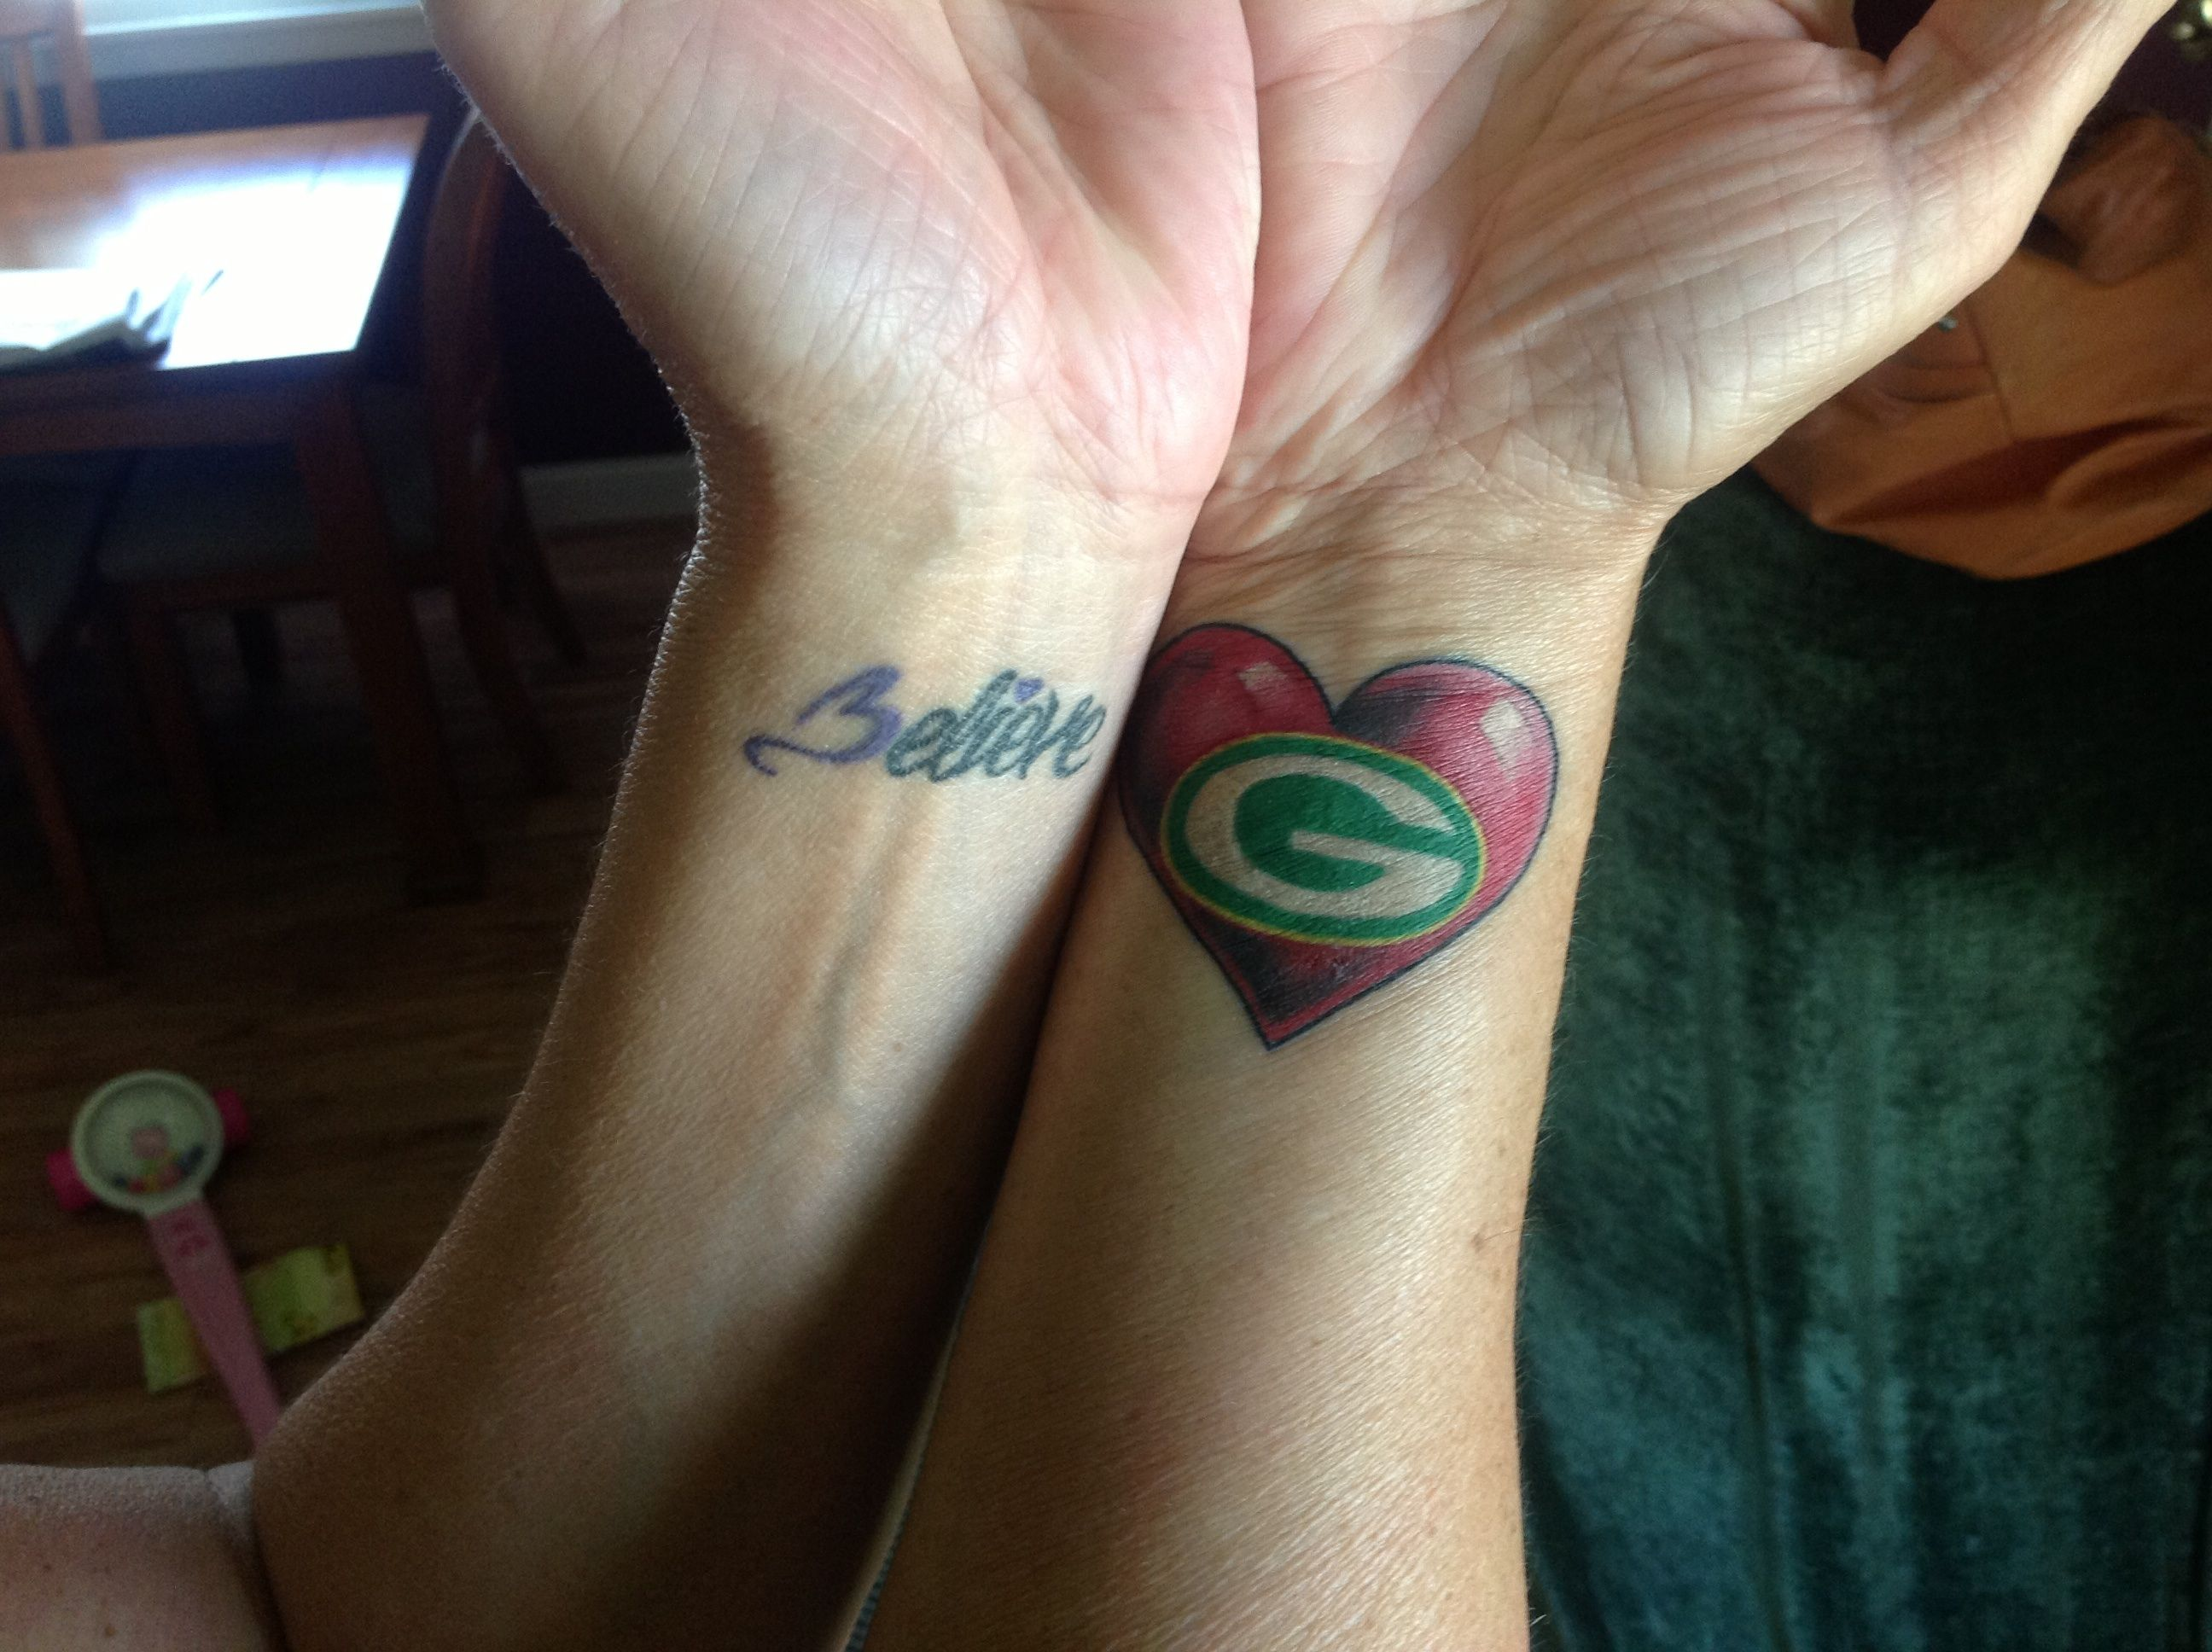 56 Year Old Grammajoan Finally Got Her A Packers Tattoo Love My Packers Tattoos Body Art Tattoos Tattoo You